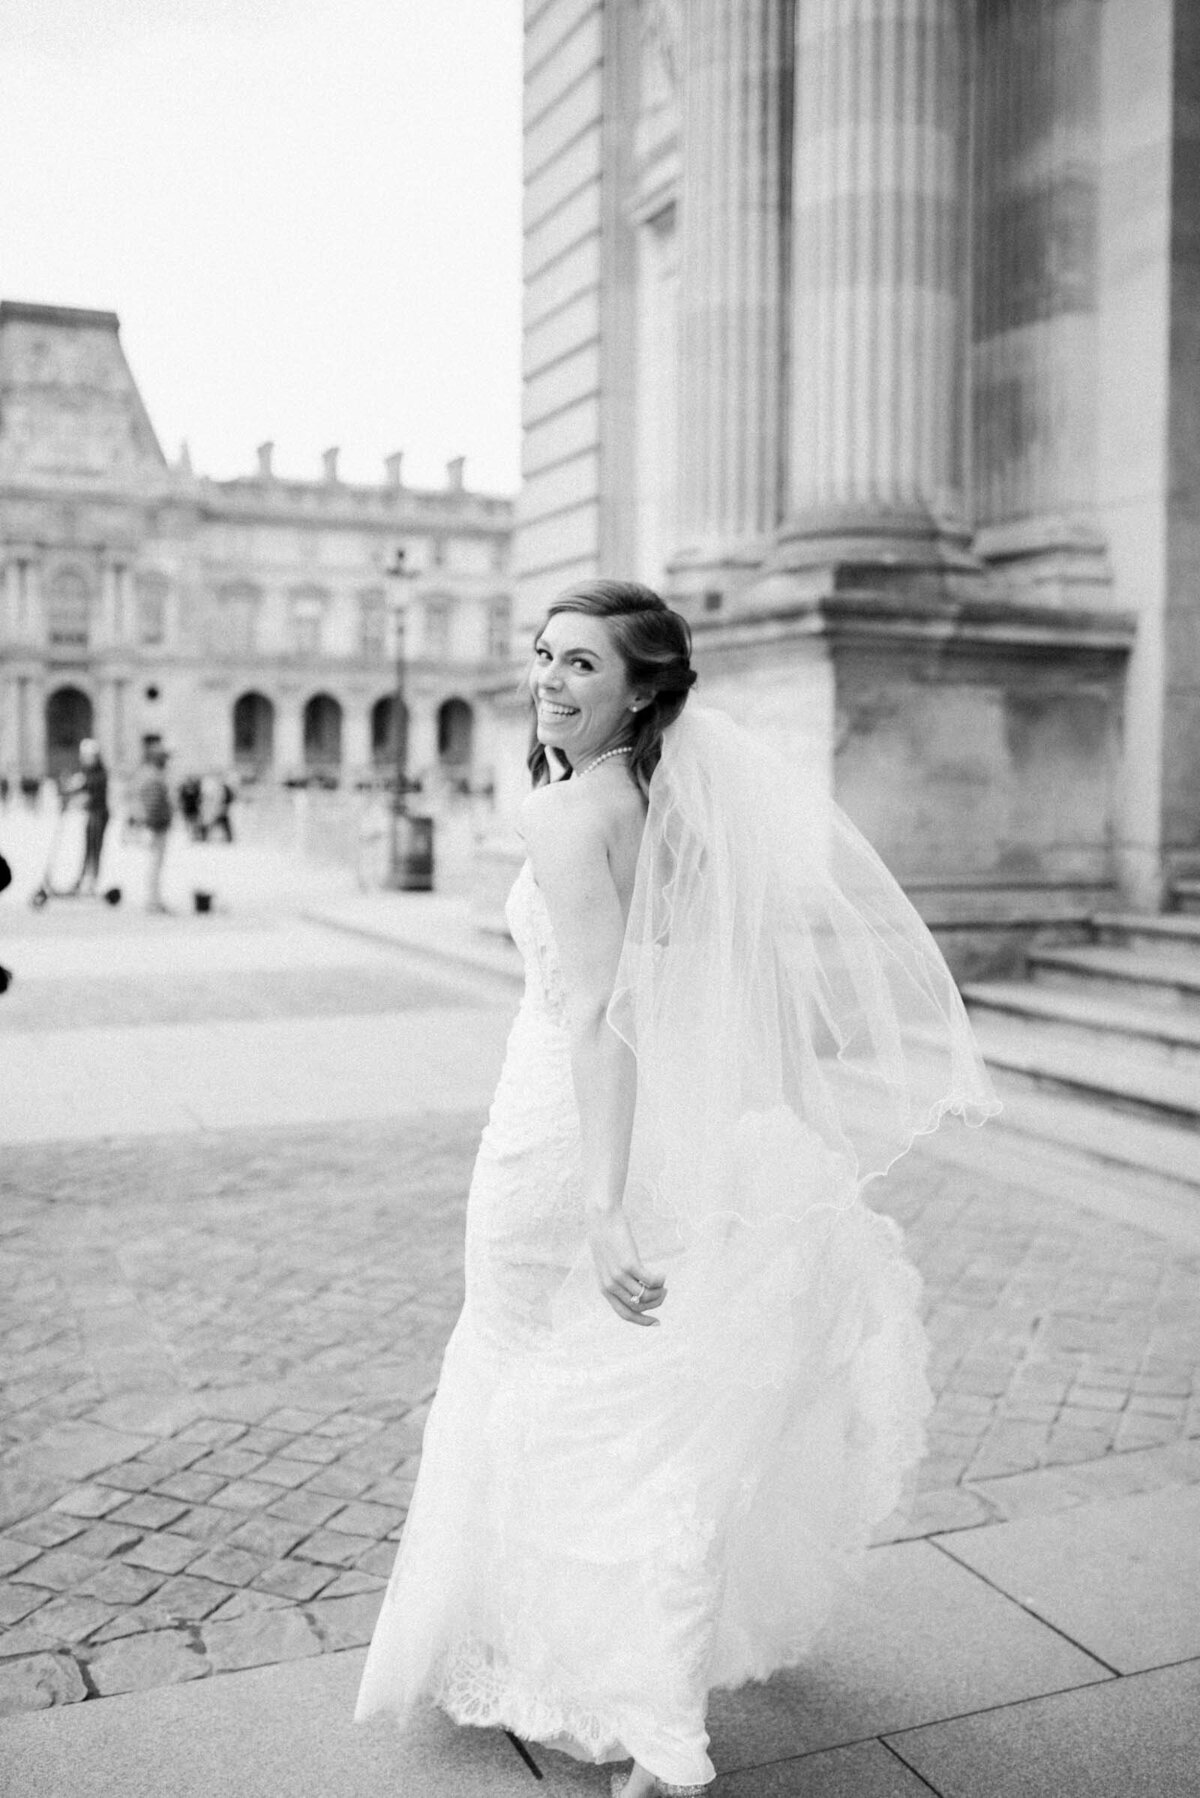 marcelaploskerphotography-paris_wedding-46